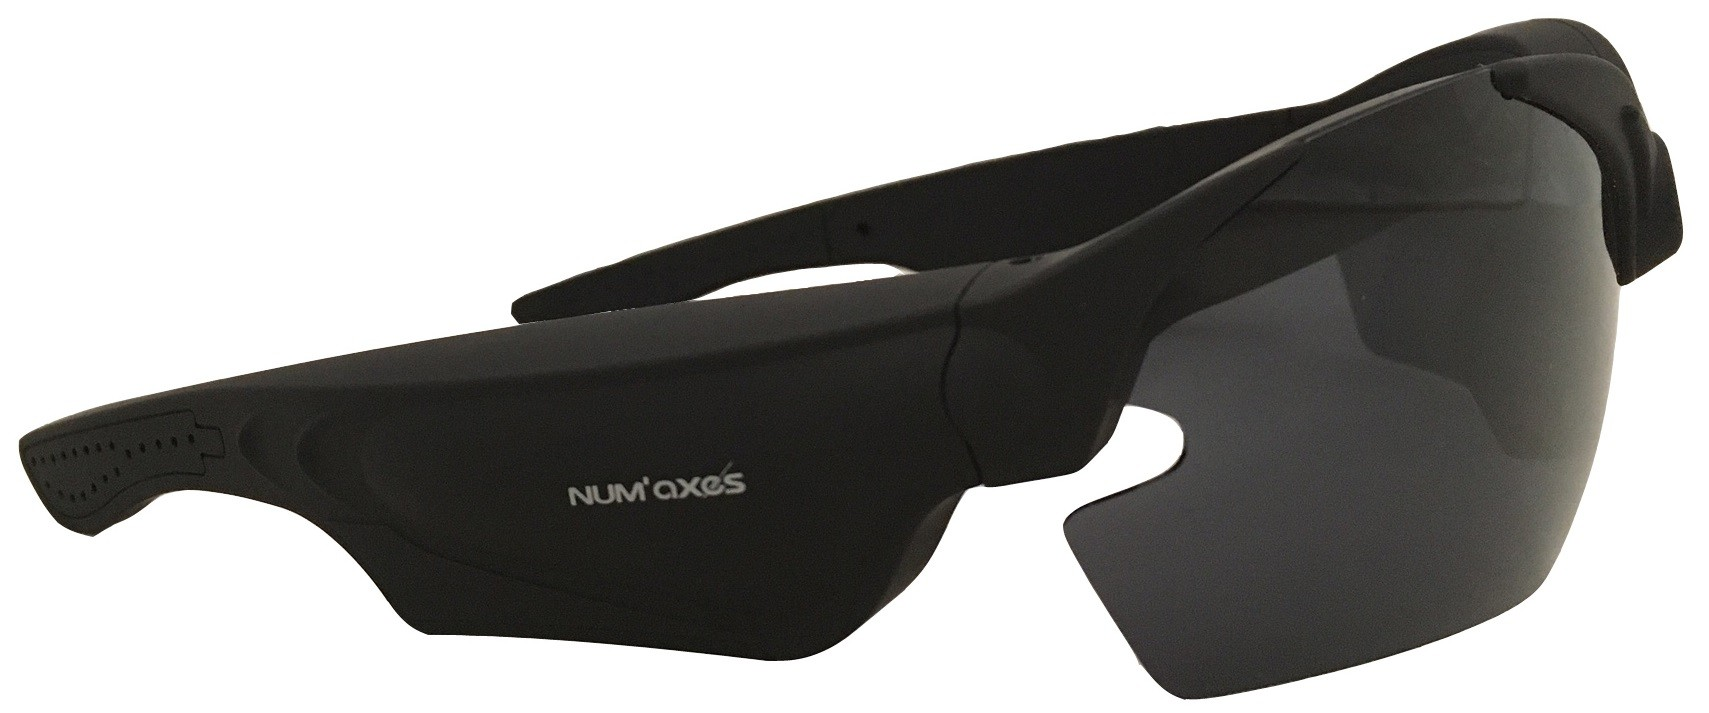 Lunettes caméra bluetooth num'axes lun1020, made in chass...